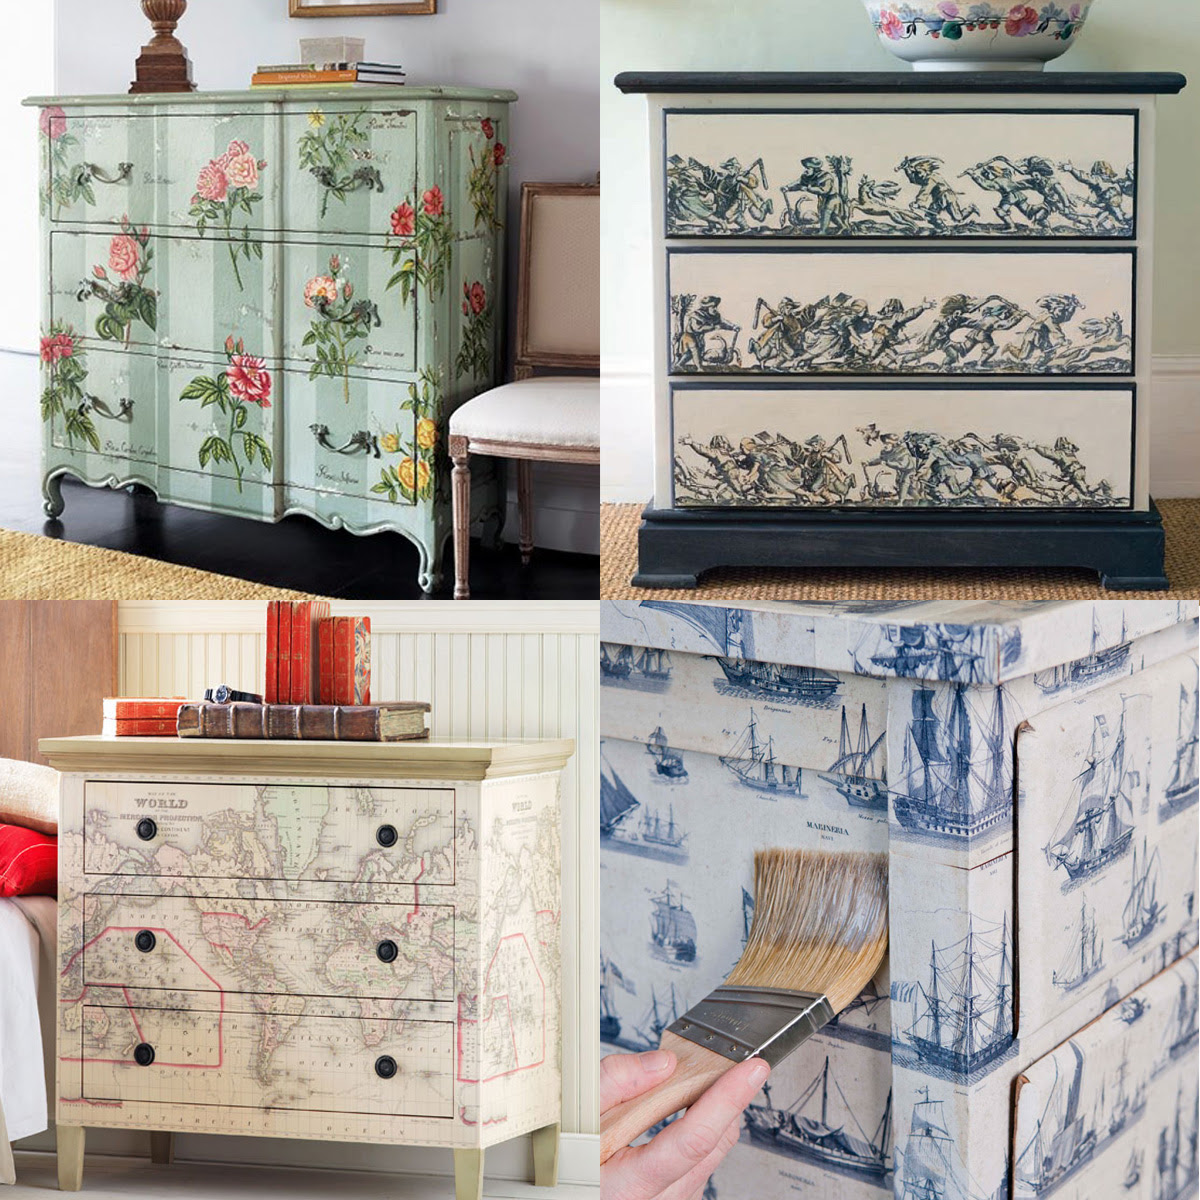 decoupage ideas for furniture. Diy Decoupage Furniture Ideas For A